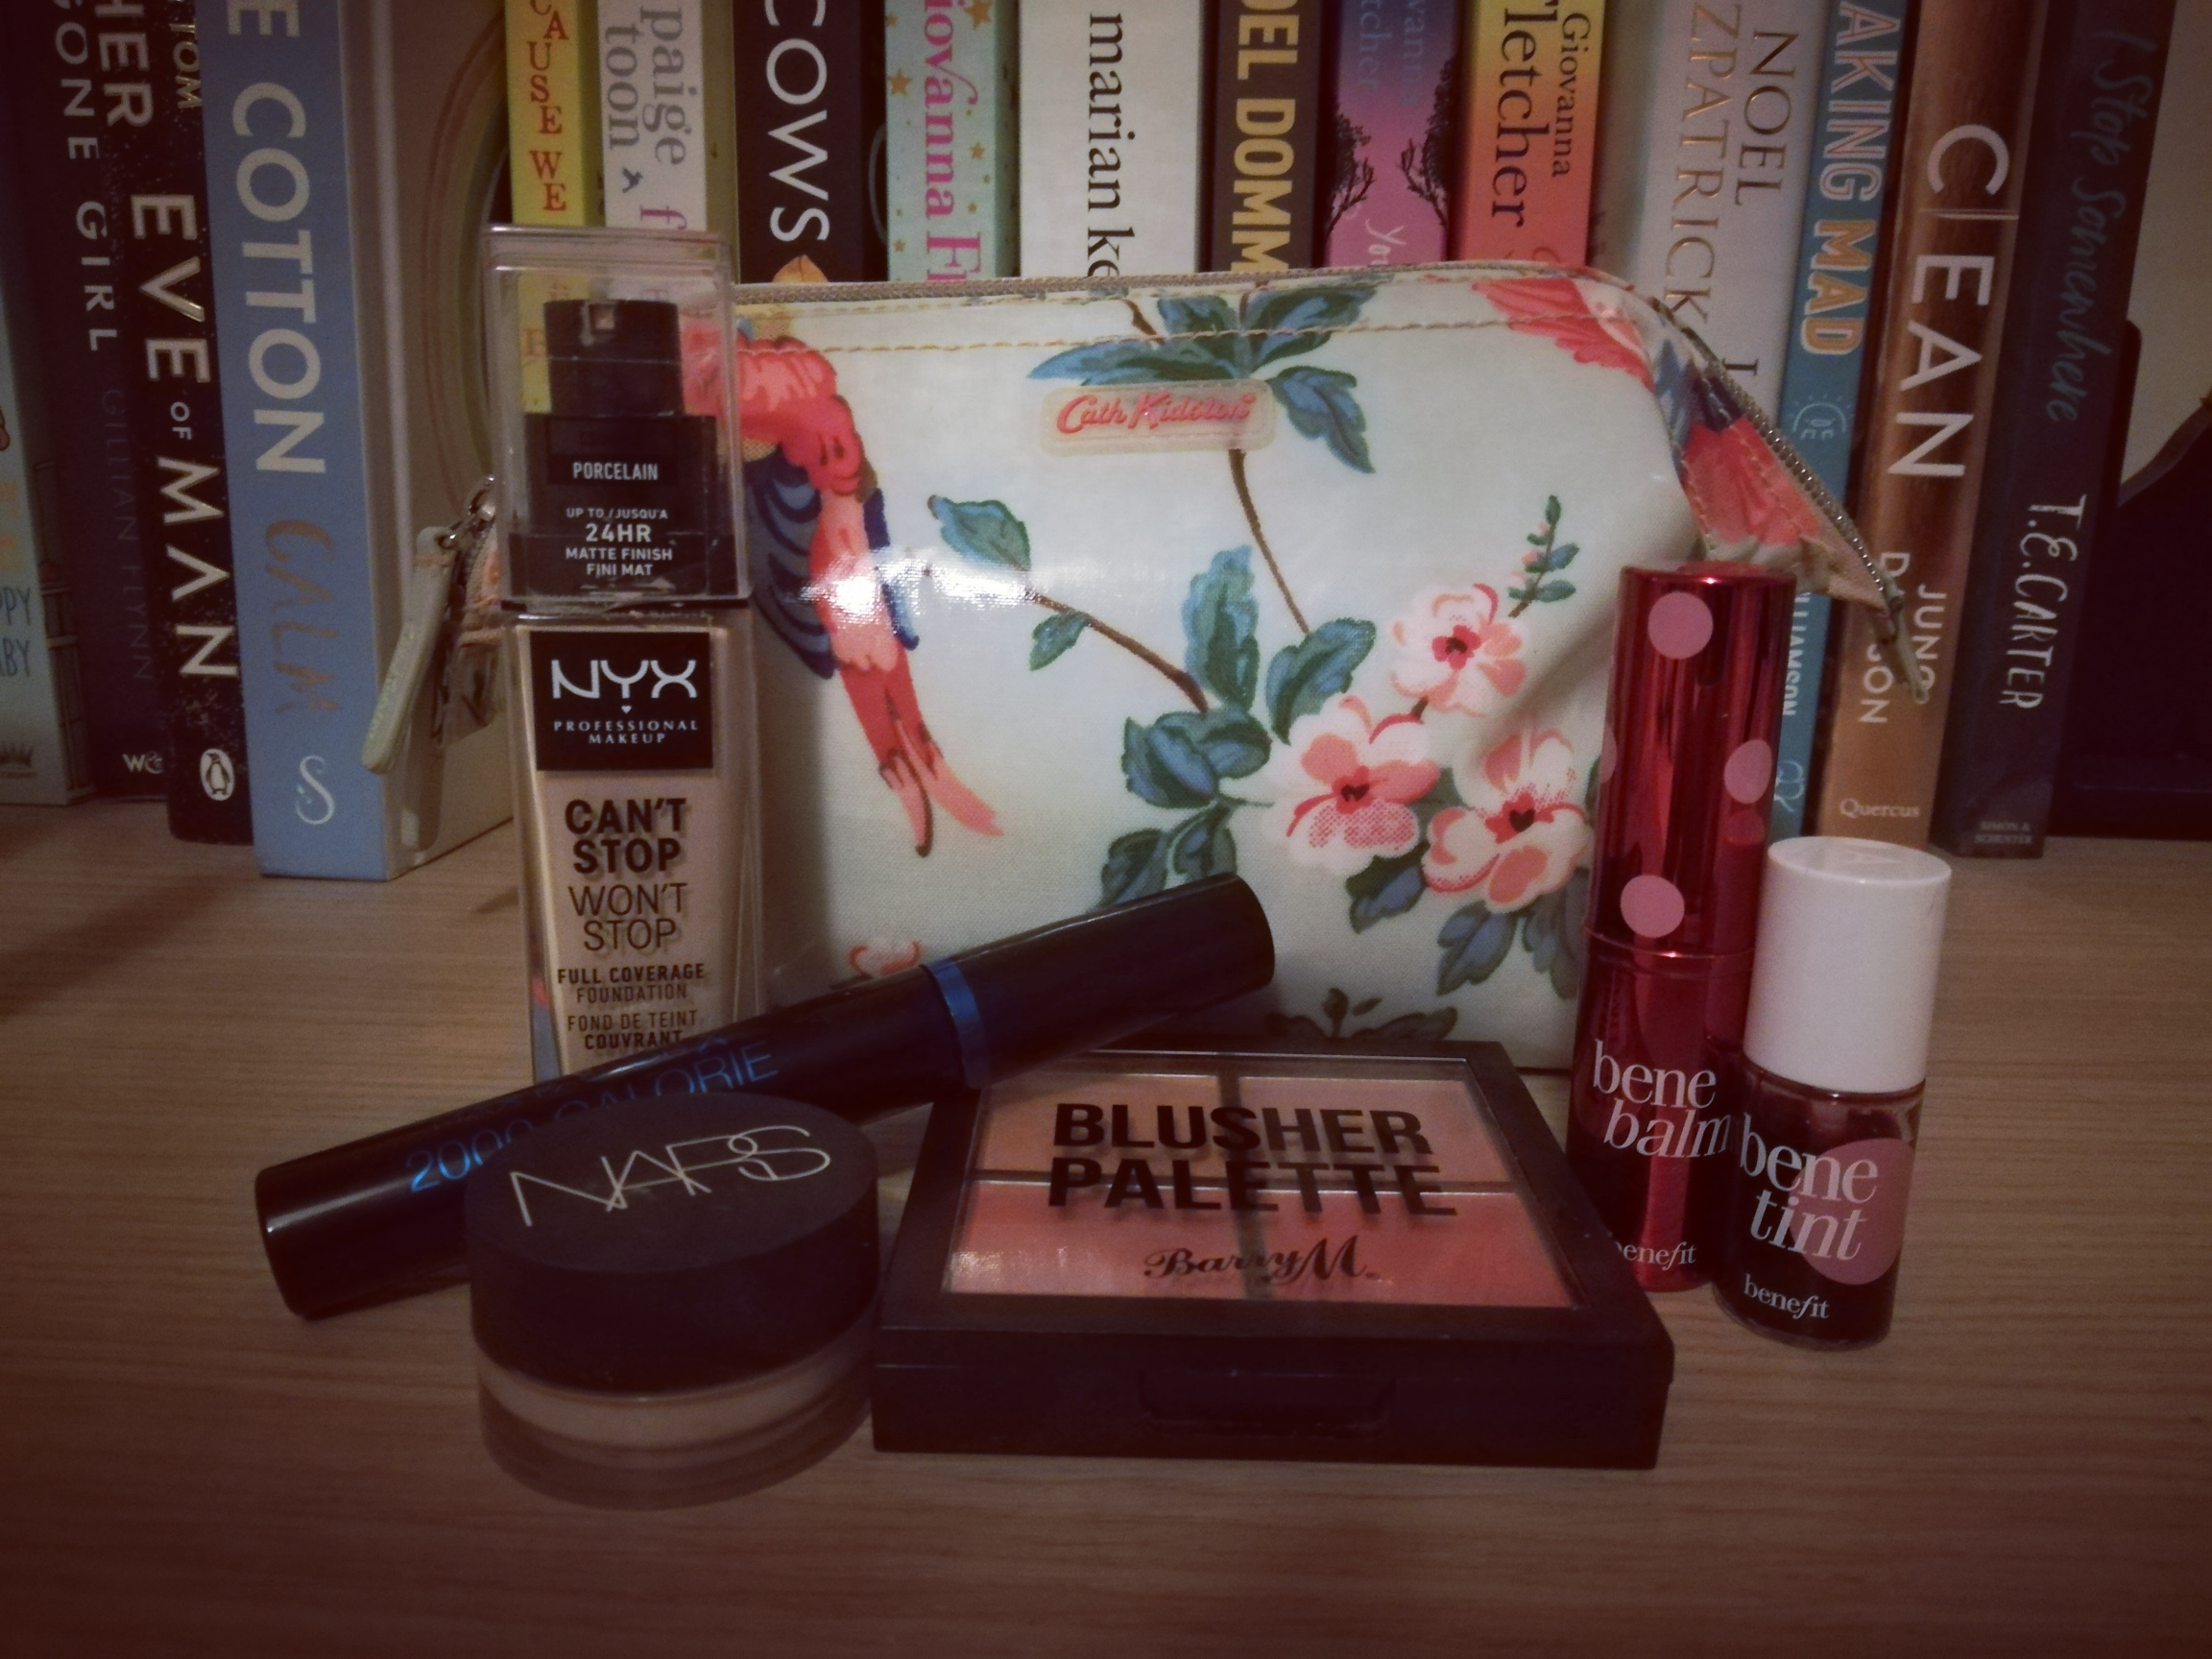 Picture of my makeup products in front of a Cath Kidston make-up bag. Left to right: NYX Can't Stop Won't Stop Foundation, MaxFactor 2000 Calorie Mascara, NARS Creamy Concealer, Barry M Blusher Quad Palette, Benefit Benebalm and Benetint.